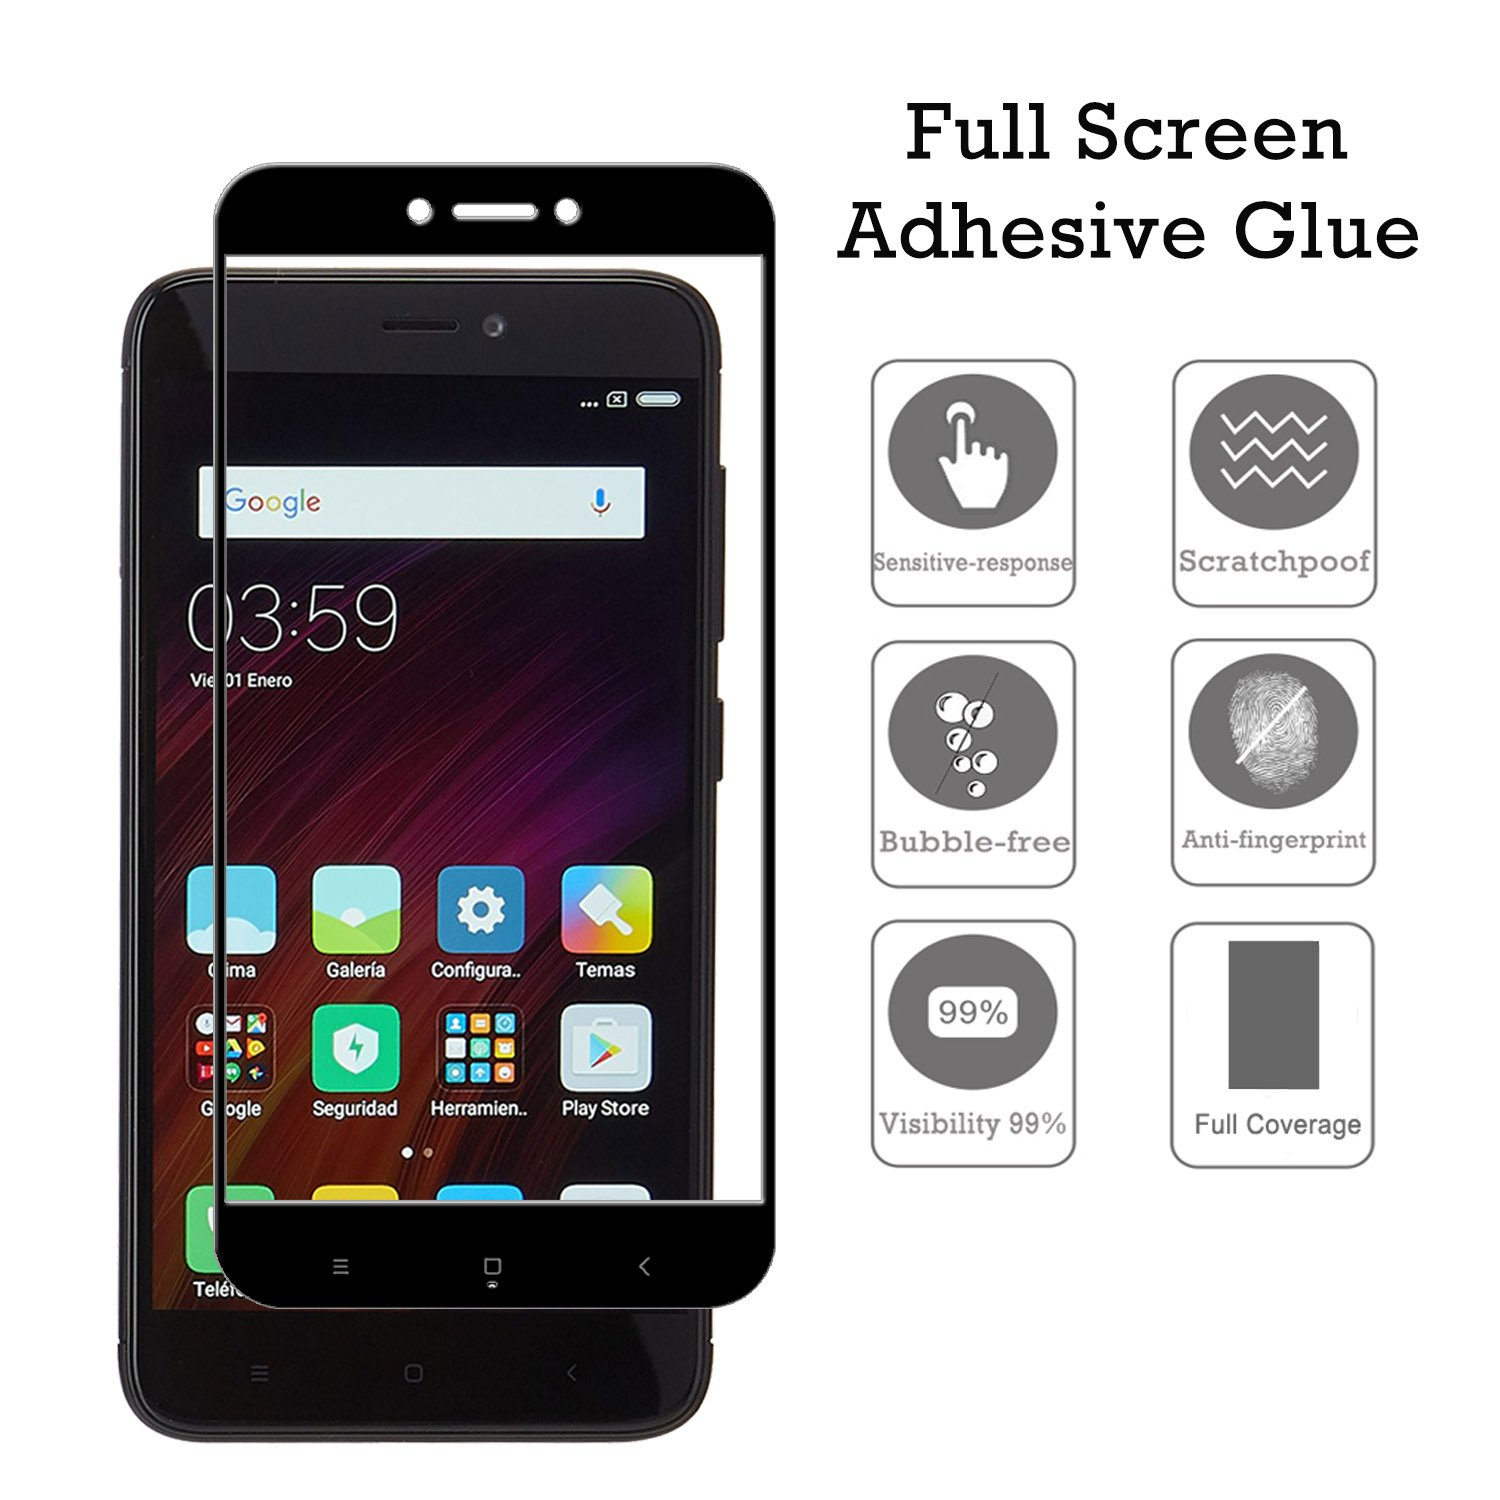 Amazon KTTWO Xiaomi Redmi 4X Screen Protector Glass 2PACK Full Screen Coverage Anti Scratch Bubble Free Tempered Glass Screen Protector with Full